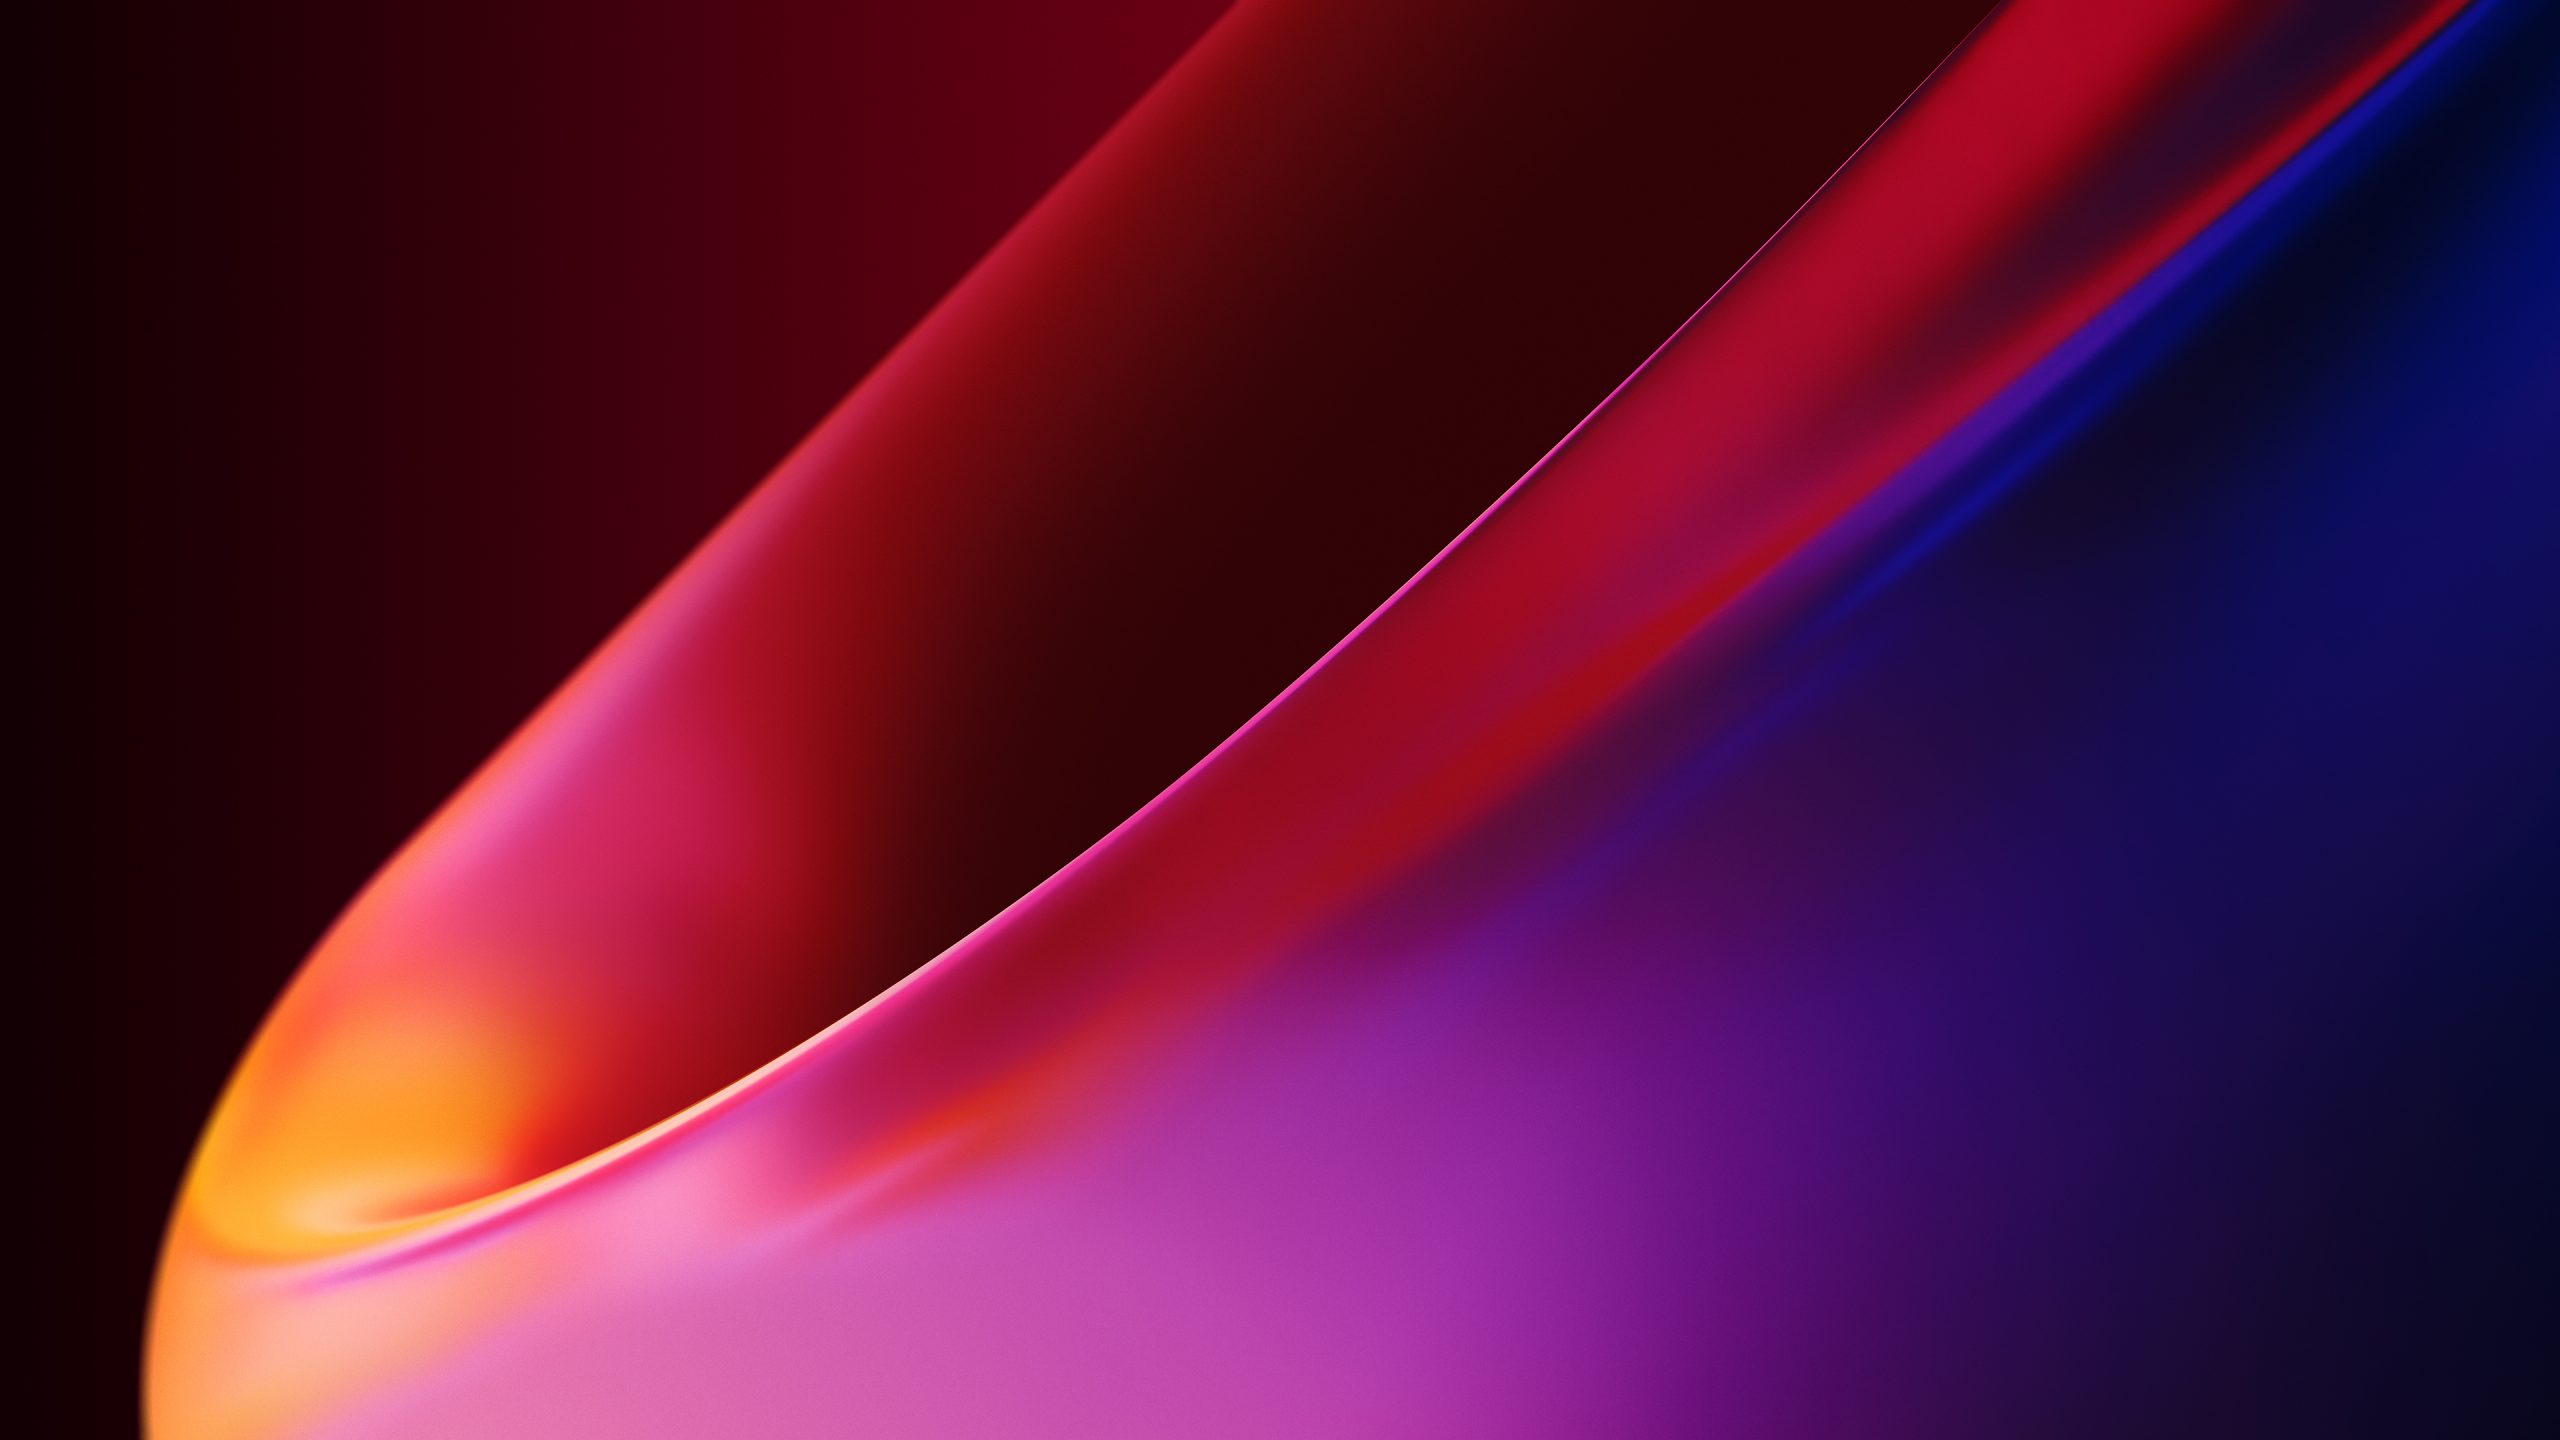 oneplus-7t-uhd-abstract-4khd-wallpaper